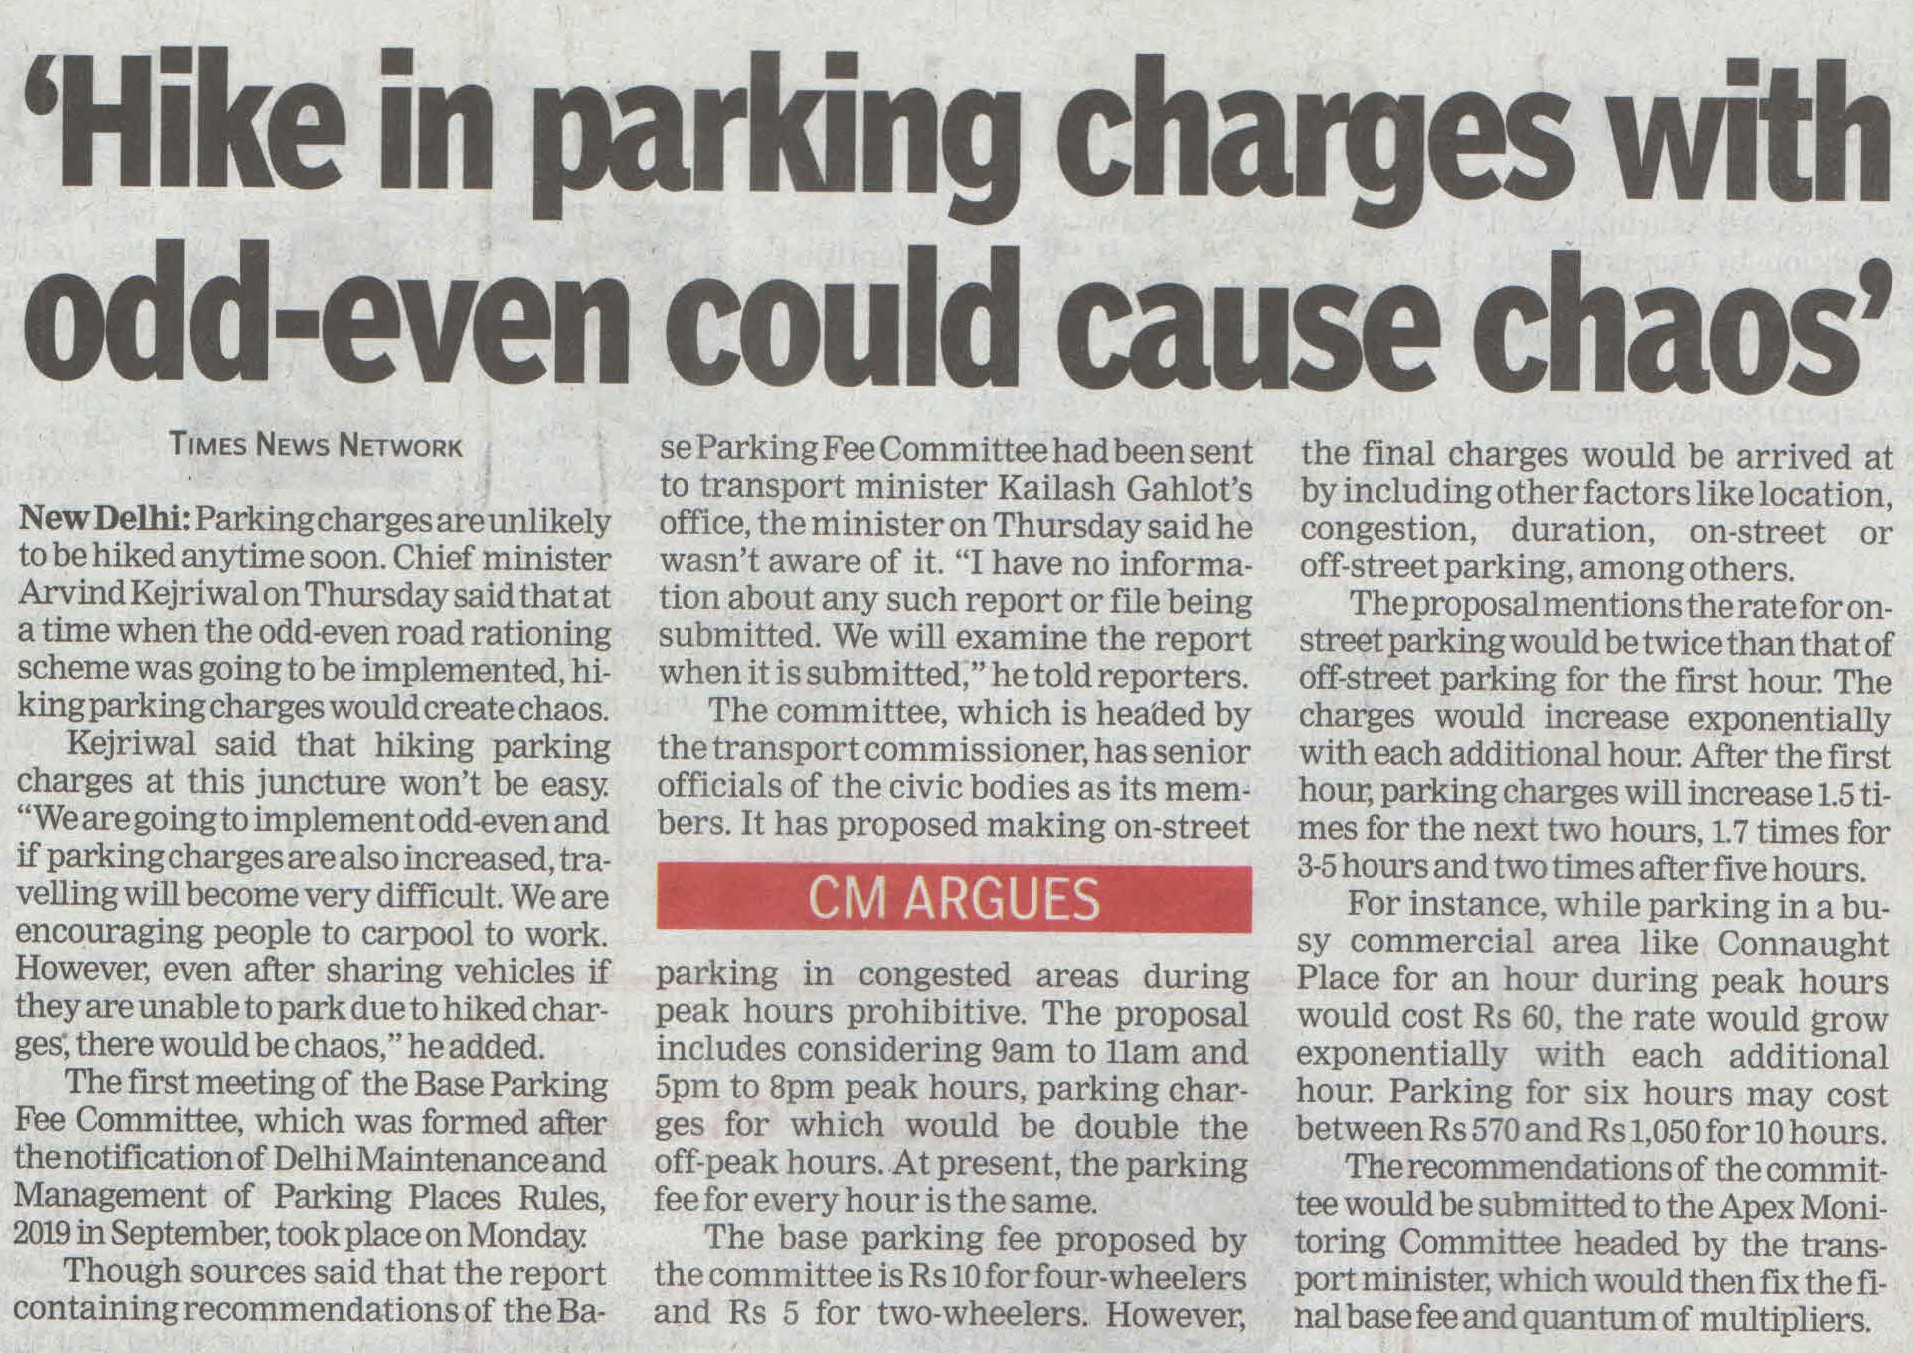 Hike in parking charges with odd-even could cause chaos